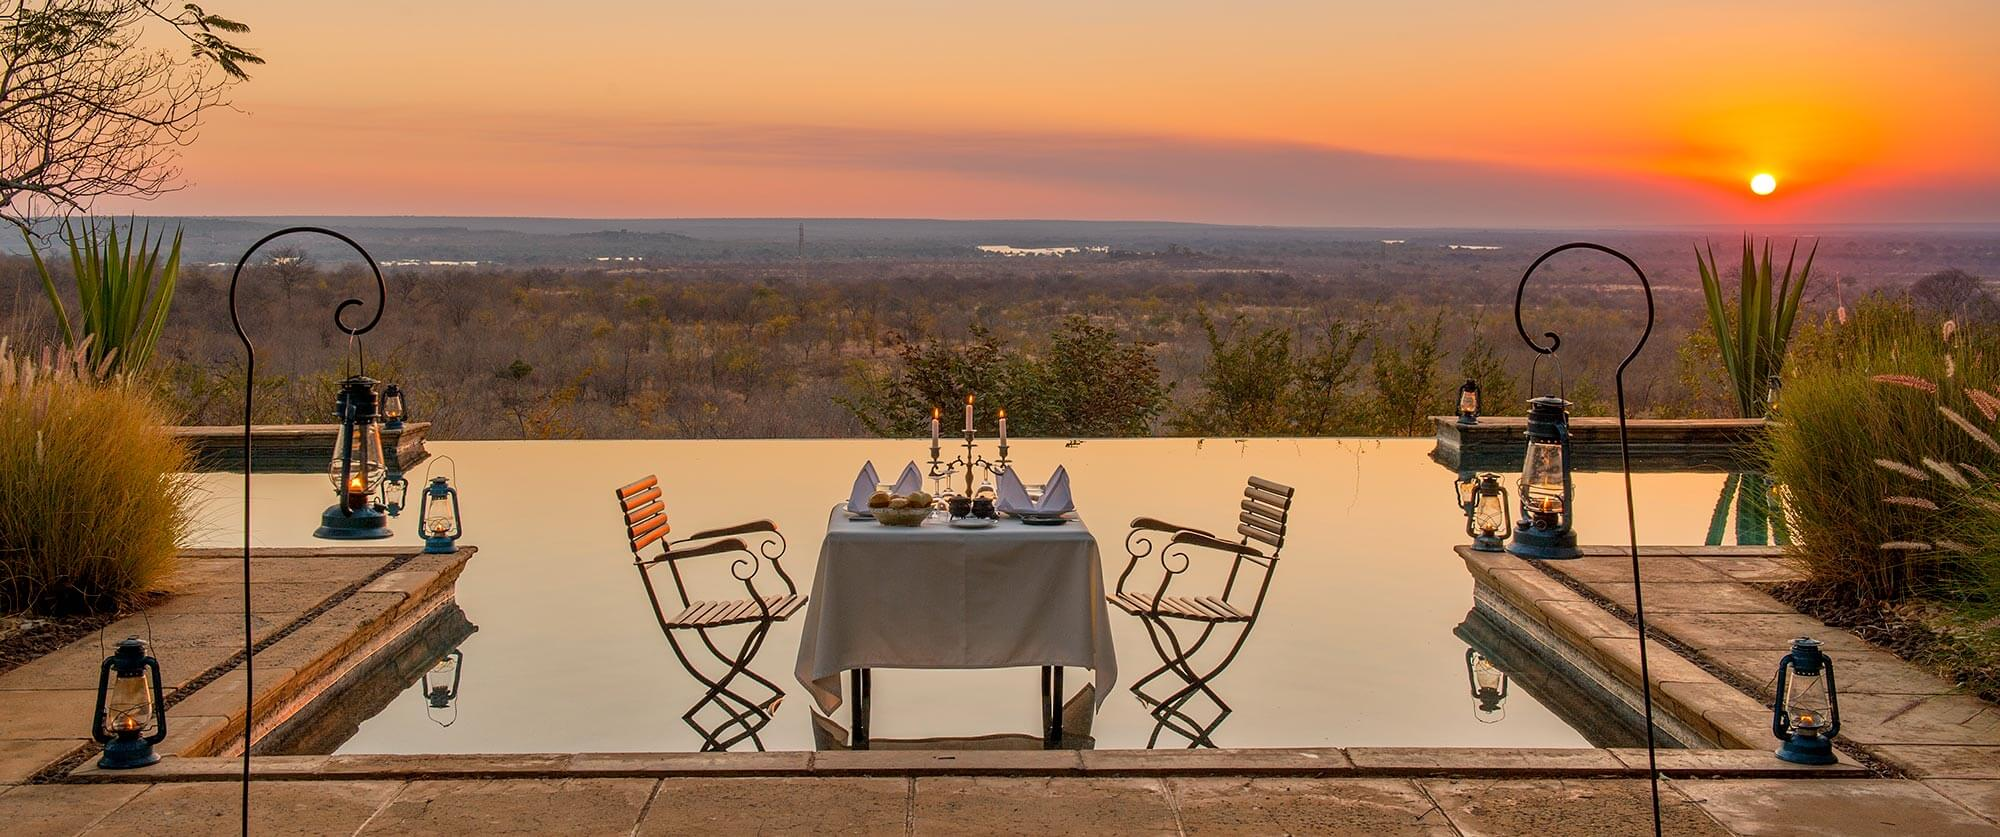 Pool at Sunset, Stanley Safari Lodge, Victoria Falls - South Luangwa, Mana Pools, and Victoria Falls Adventure Package